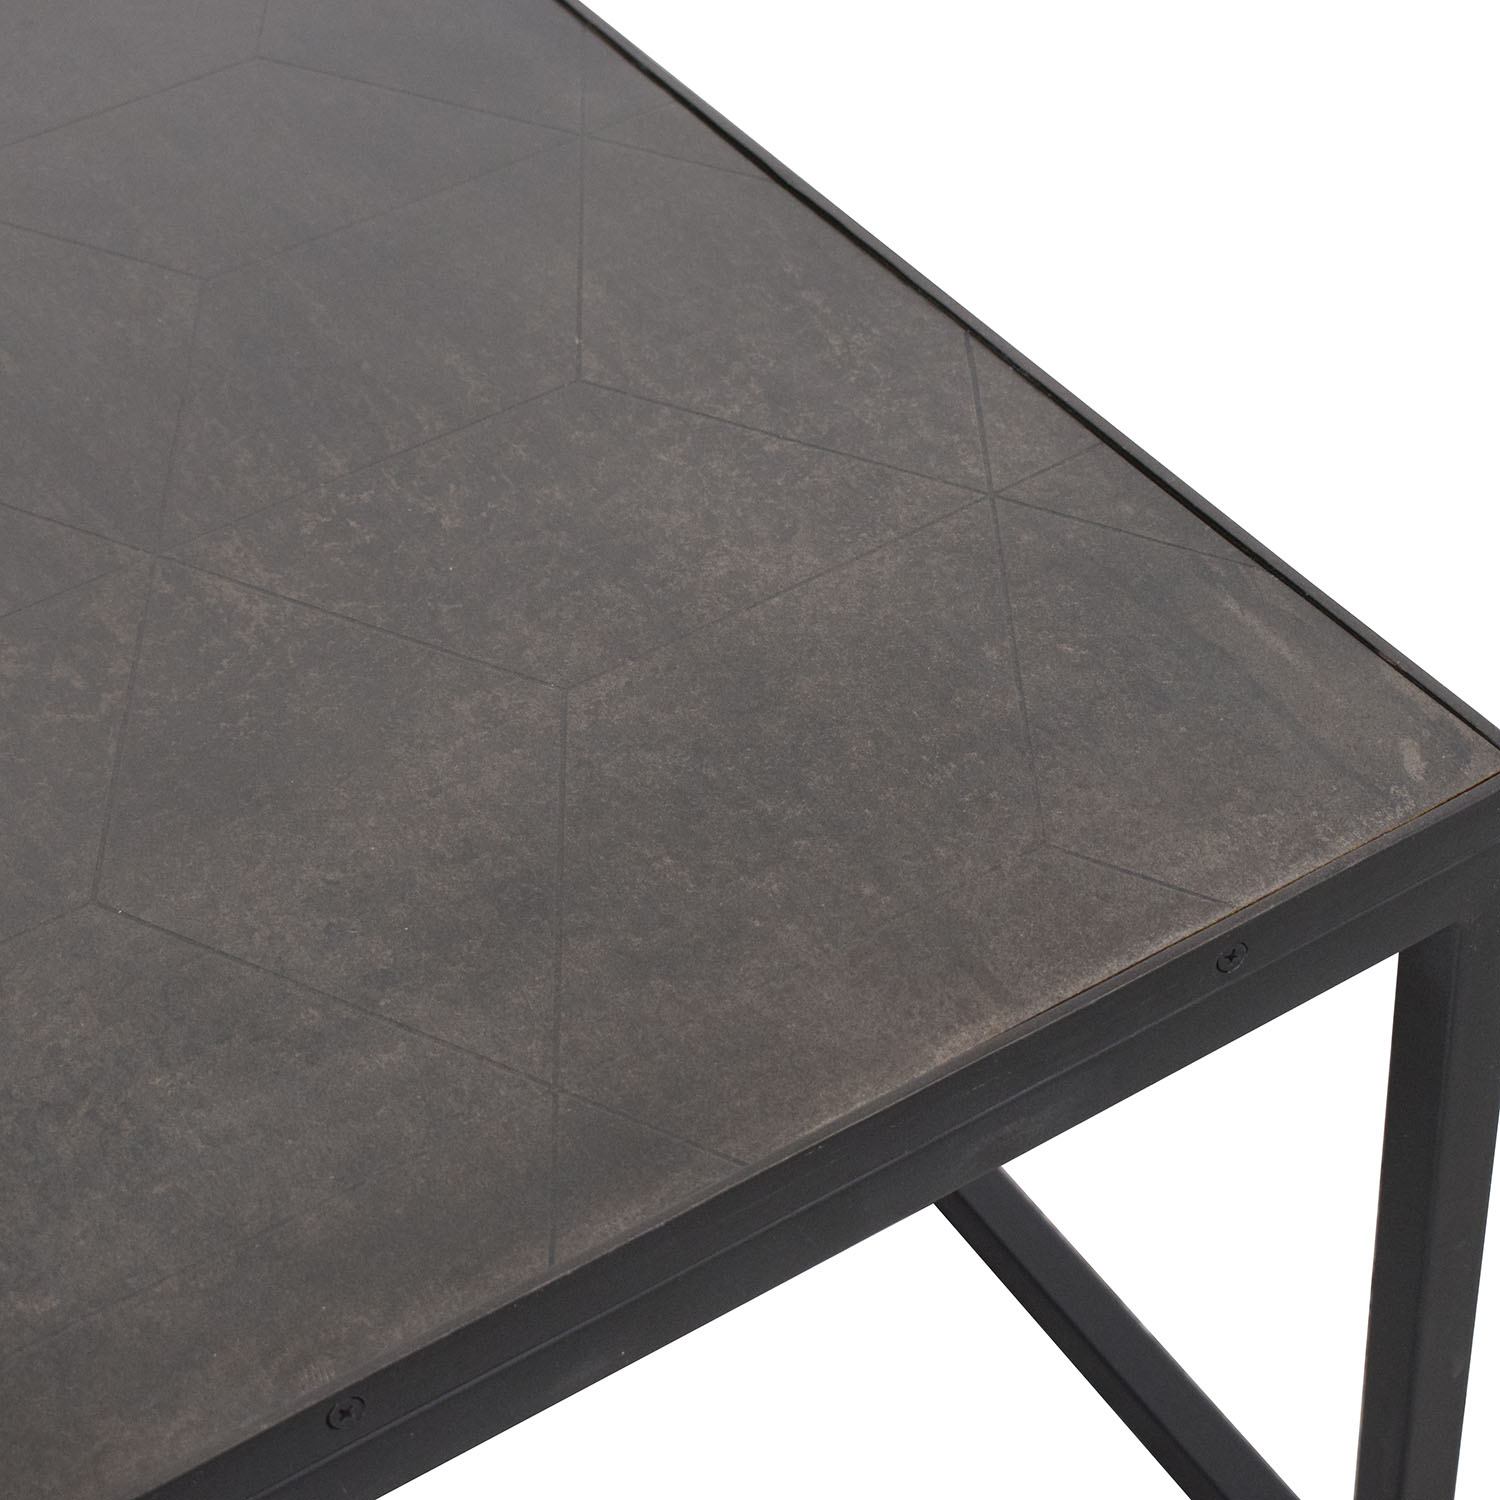 Restoration Hardware Restoration Hardware Mercer Rectangular Coffee Table Tables